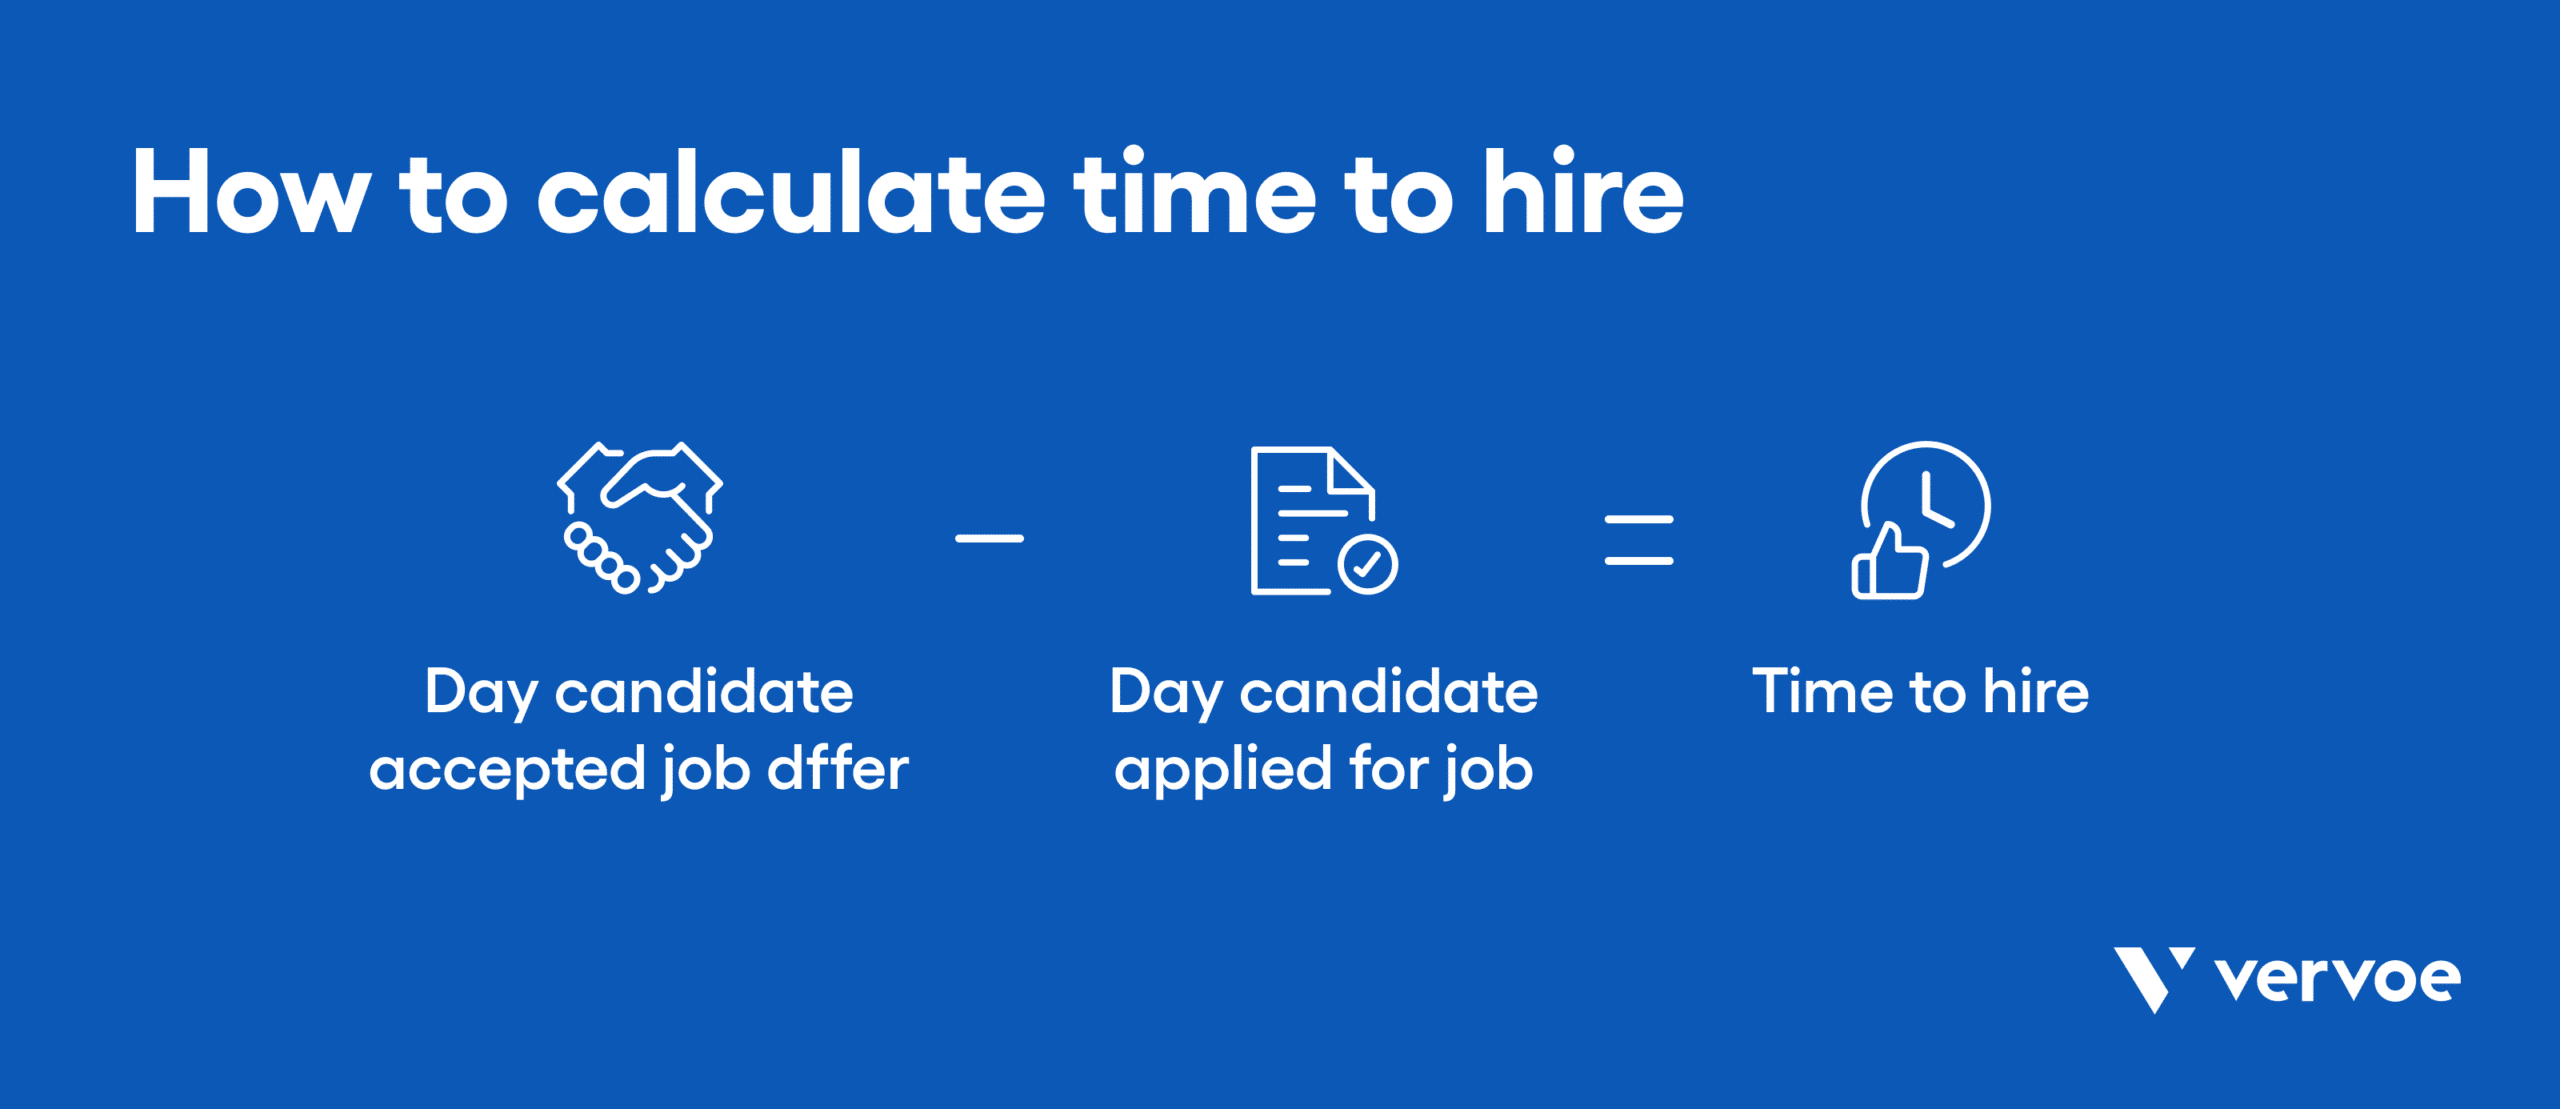 Infographic showing how to calculate time to hire